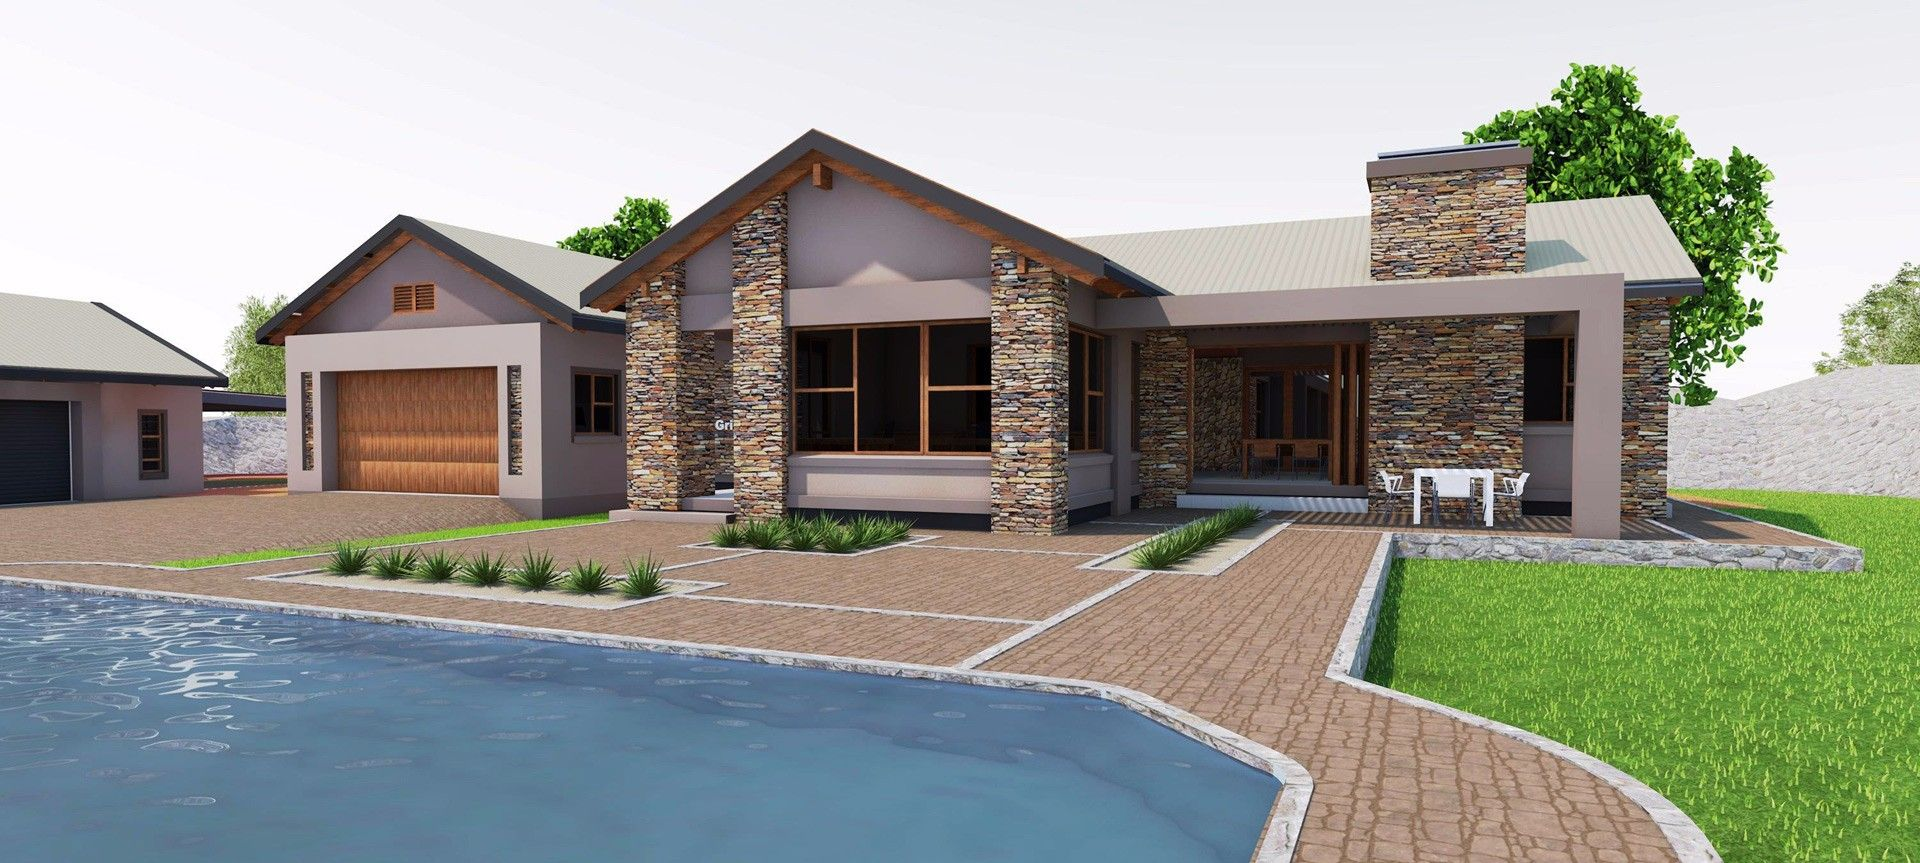 Icymi house plans in south africa free download also home design rh pinterest